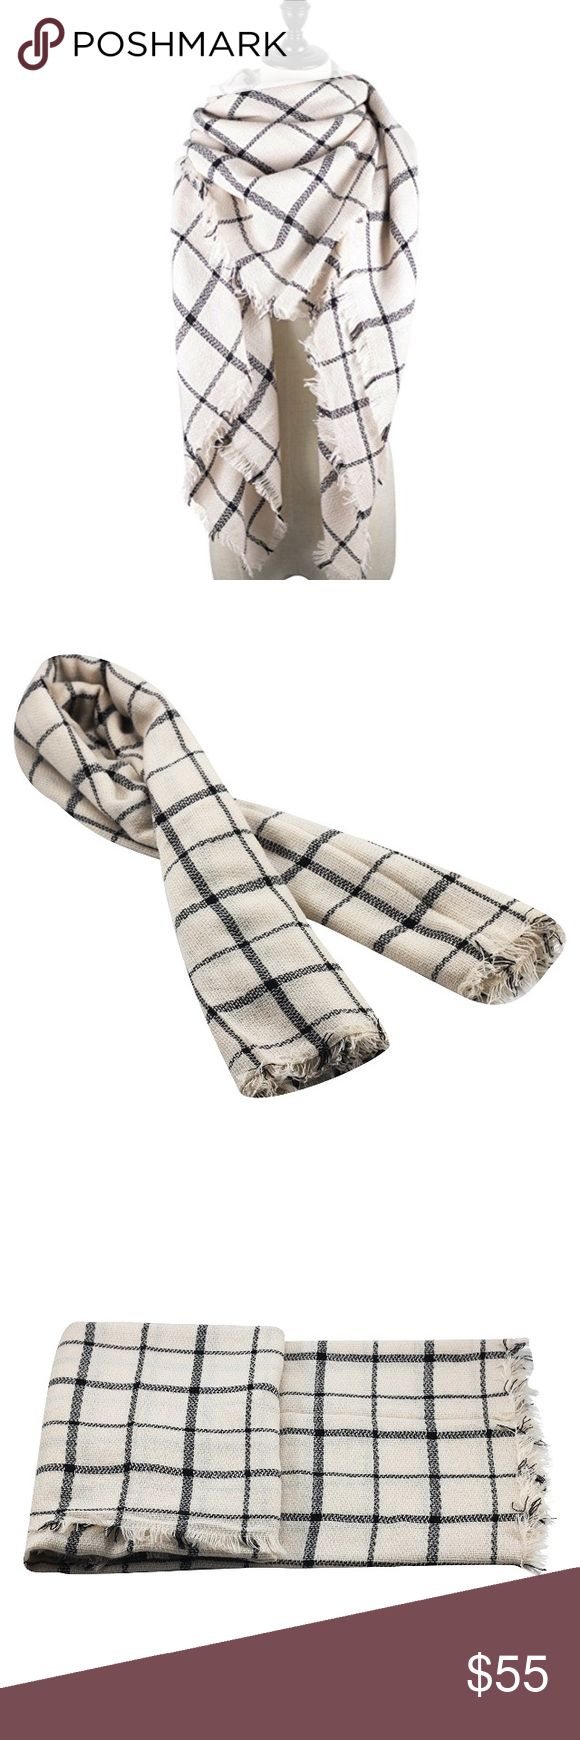 "Greyscale Ultra Plush Plaid Blanket Scarf A huge, cuddly scarf perfect for sweater weather in a neutral, versatile grey color palette. Wear as a wrap, shawl, scarf, or a small throw blanket.  55"" x 55""  ❌ Sorry, no trades.  fairlygirly fairlygirly Accessories Scarves & Wraps"